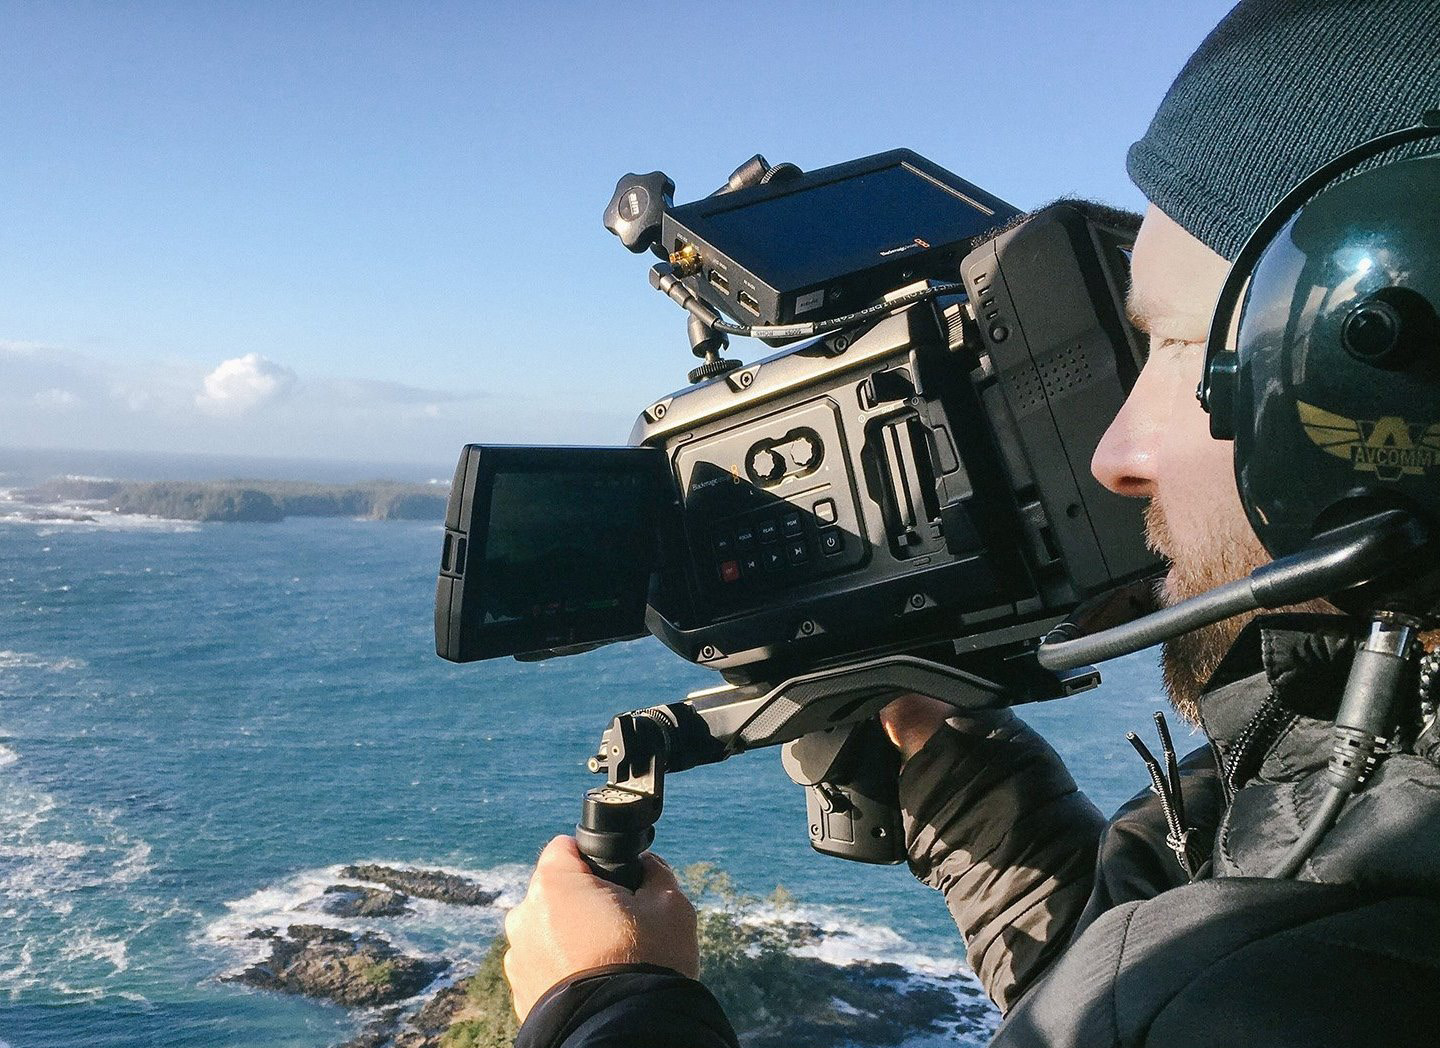 Mark Wyatt - Blackmagic Ursa Mini - Vancouver Video Production